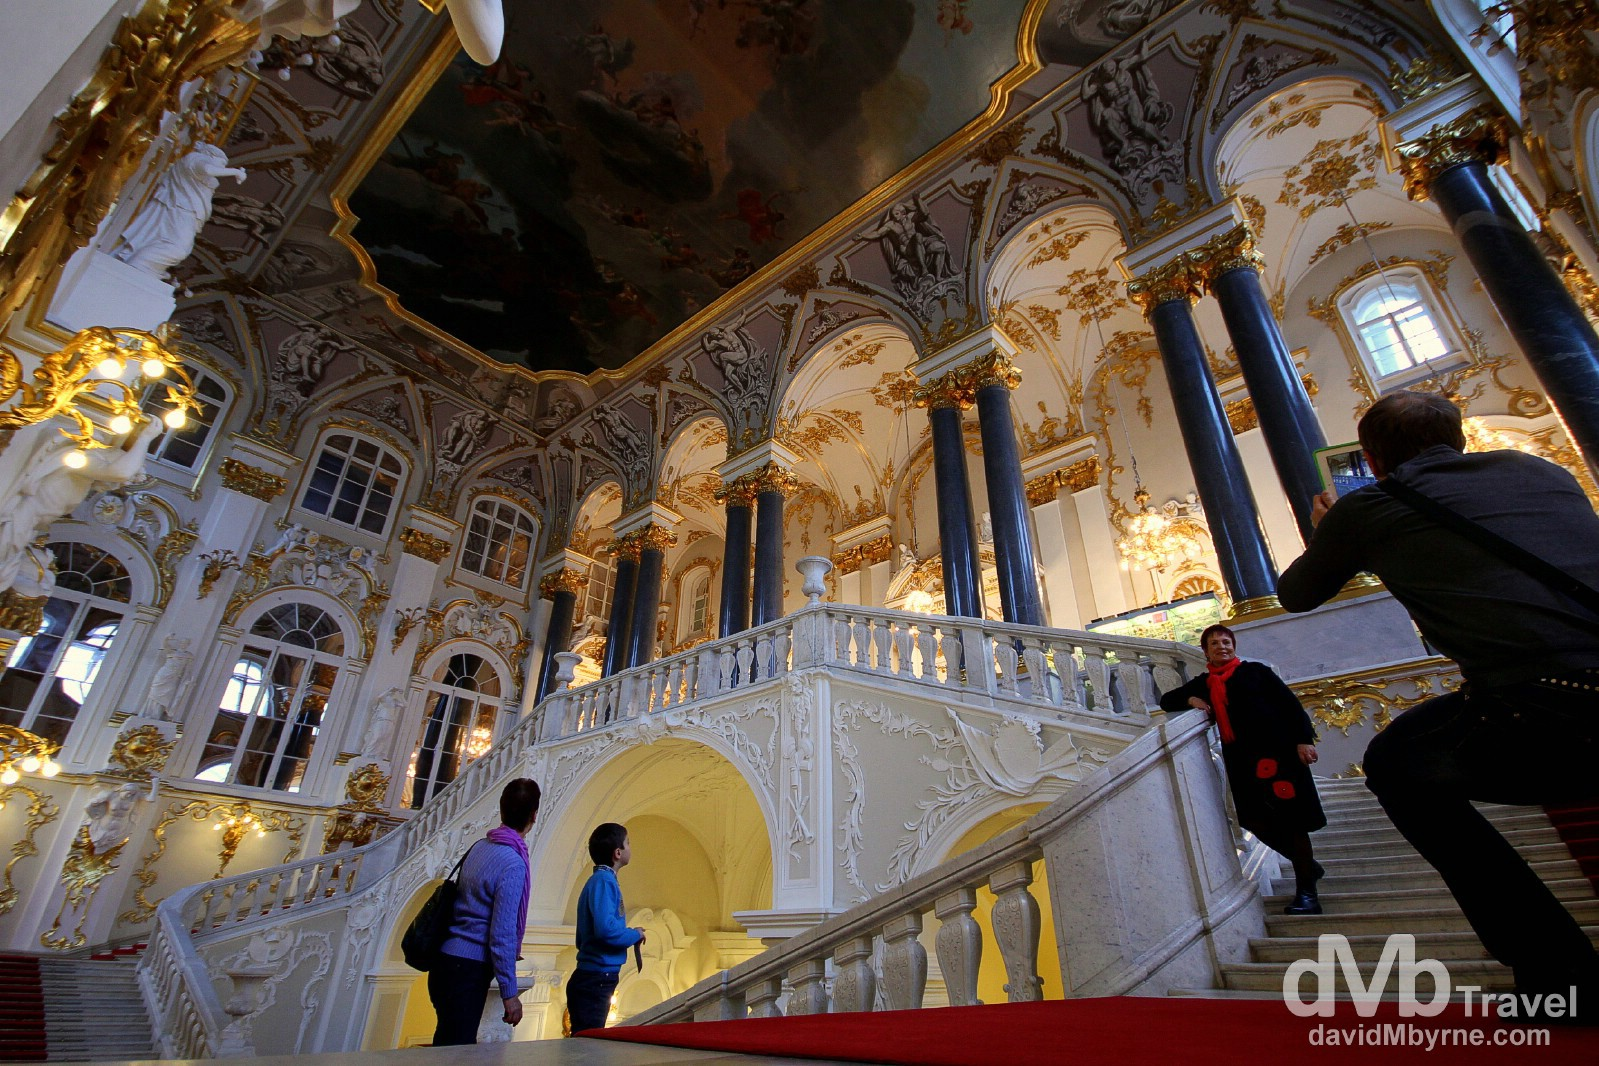 People on the Jordan Staircase of the Winter Palace, St Petersburg, Russia. November 22nd 2012.